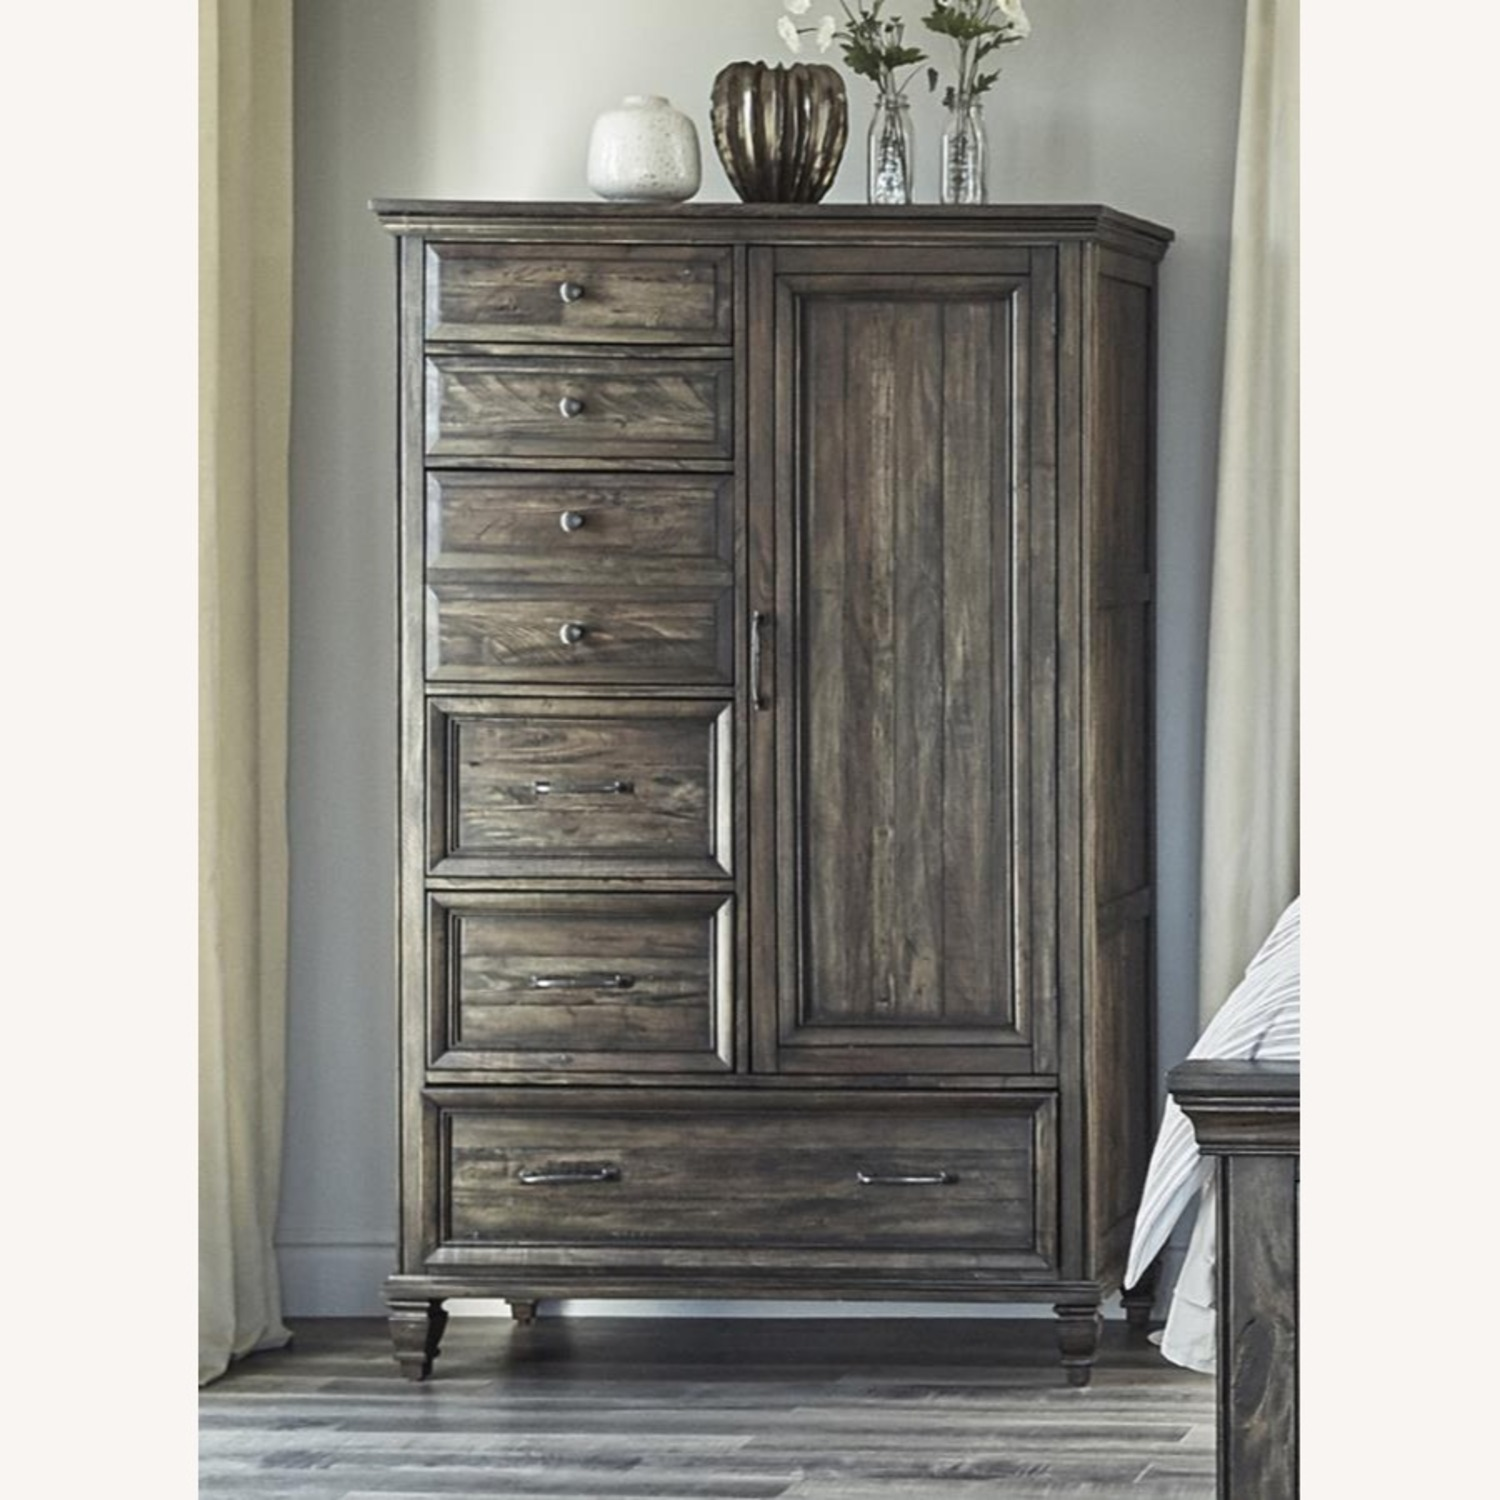 Door Chest In Weathered Burnished Brown Finish - image-3